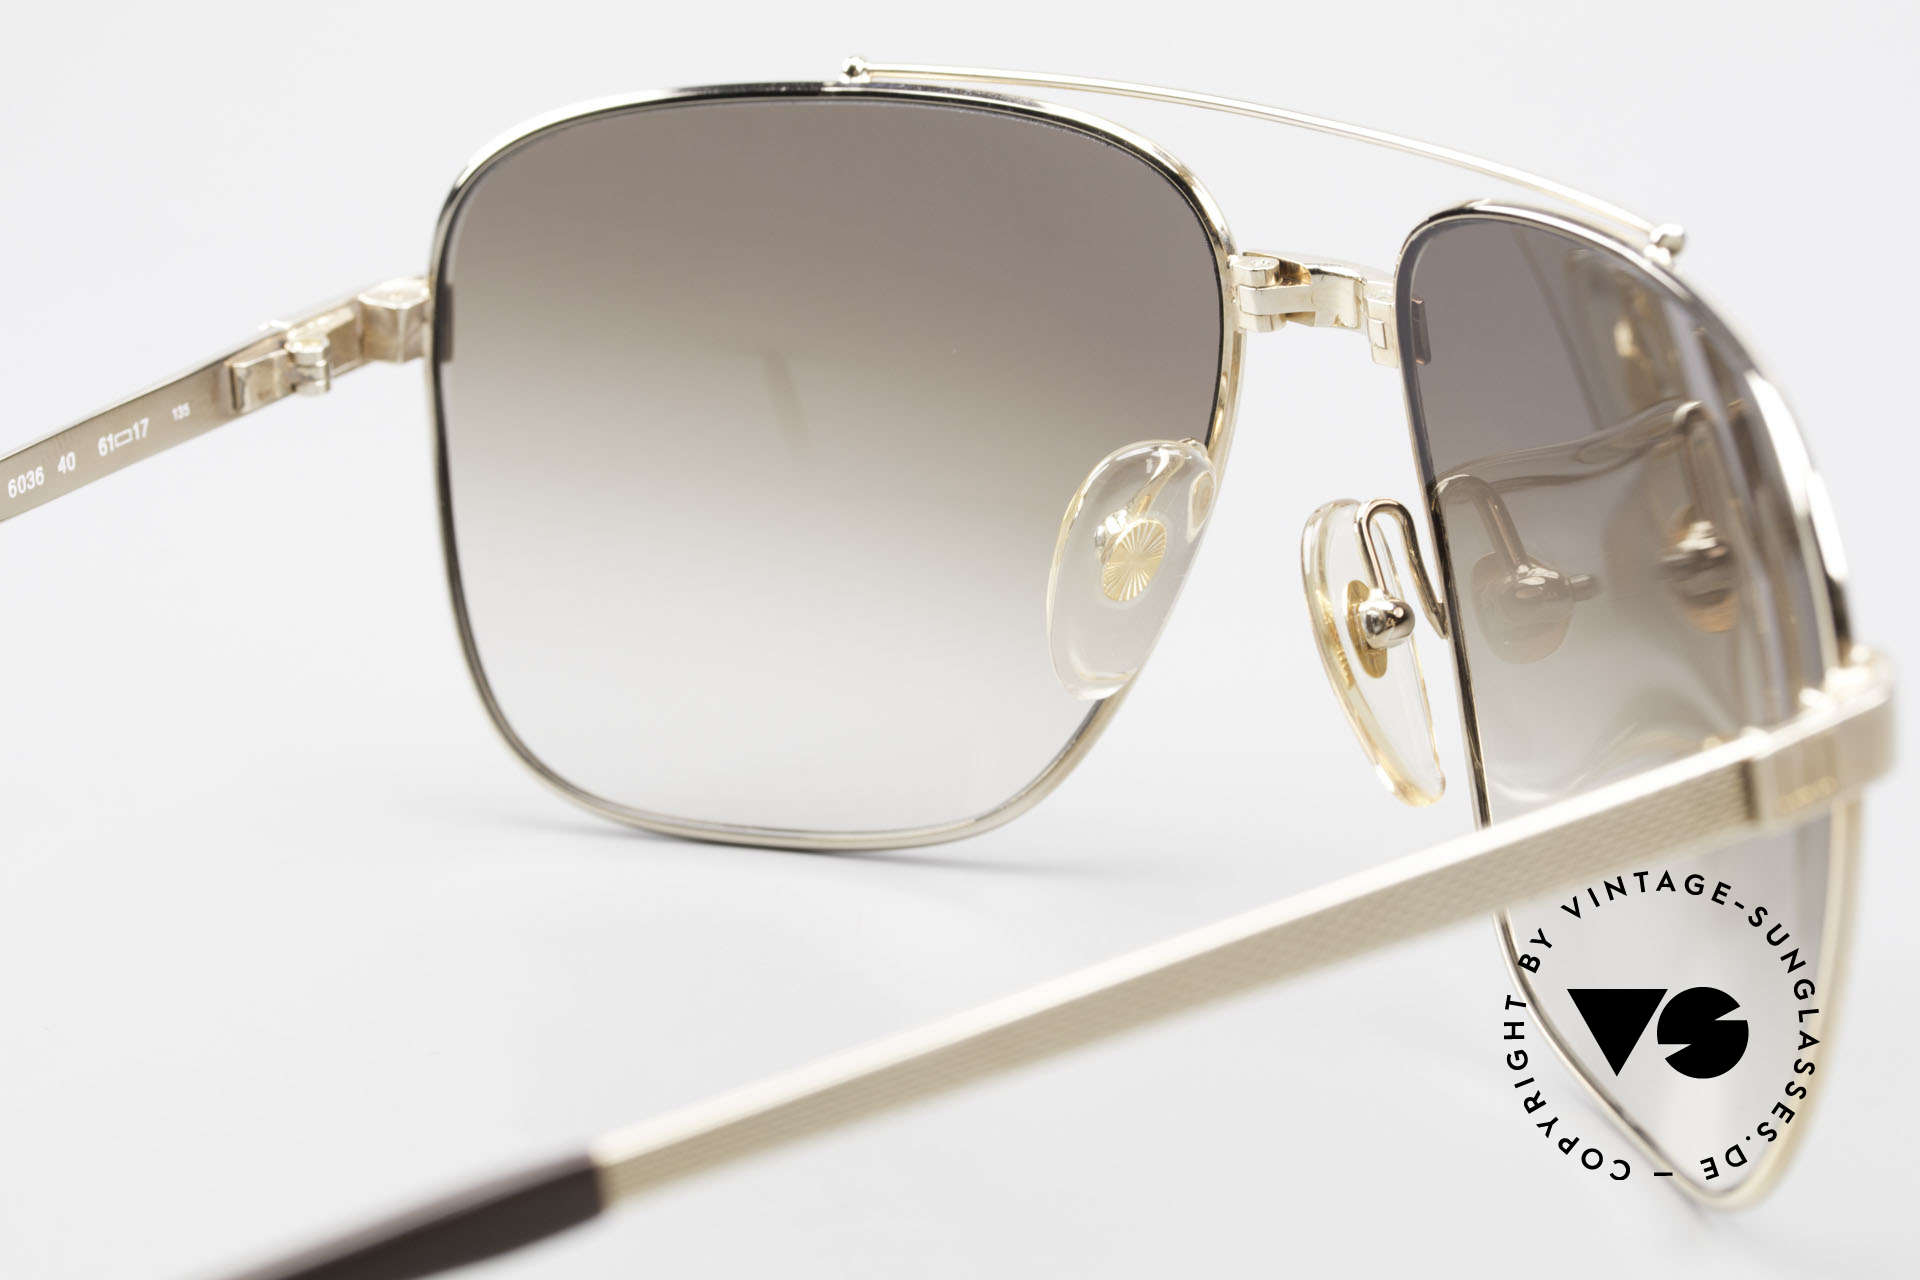 Dunhill 6036 Gold Plated Frame Comfort Fit, Size: large, Made for Men